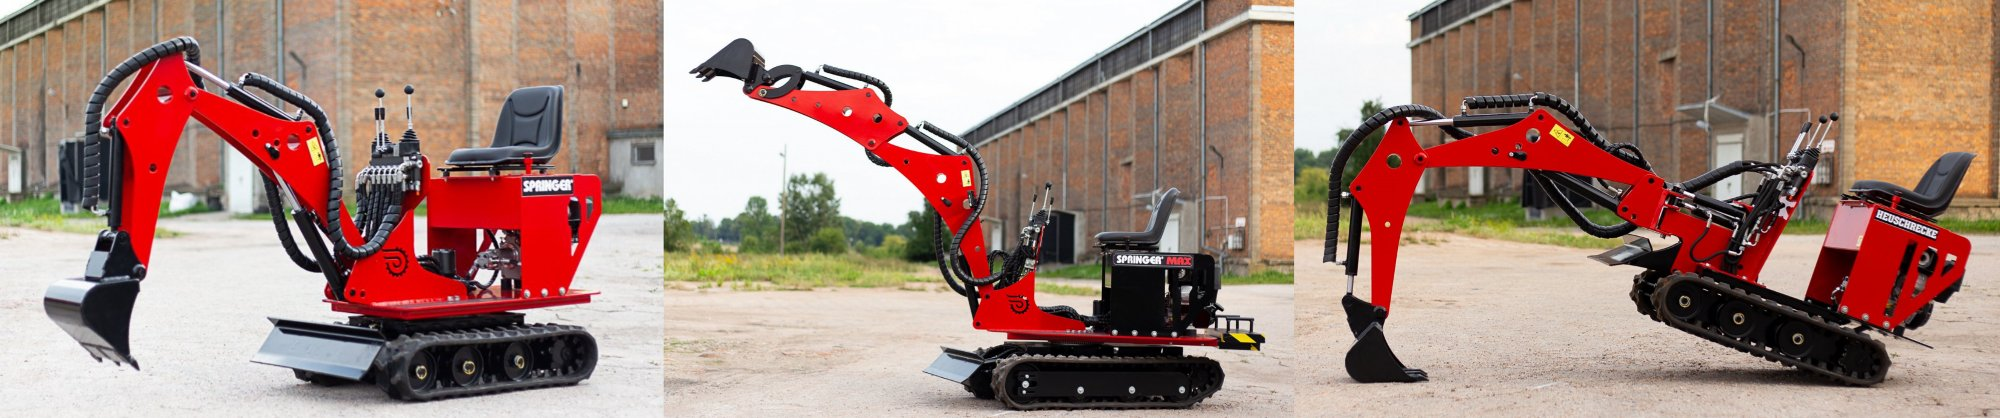 Elgo Plus Mini digger